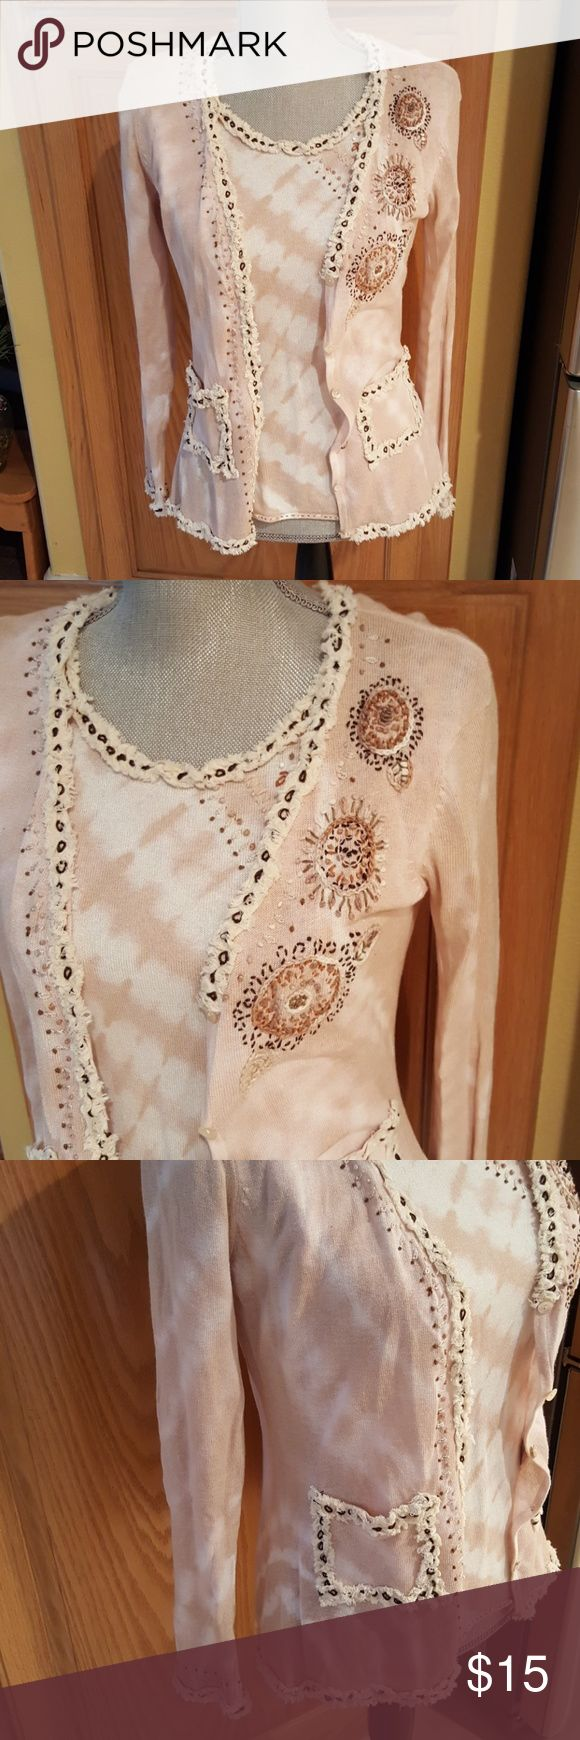 Beautiful sweater set. Size L Very unique sweater set. Bead embellishments in excellent condition.  TTS. Neutral colors to compliment your wardrobe.  Feel free to ask any questions prior to purchase.  Long sleeve outer sweater and sleeveless shell.   Bundle discount available.  All reasonable offers accepted.  Non-smoking home. Anthropologie Sweaters